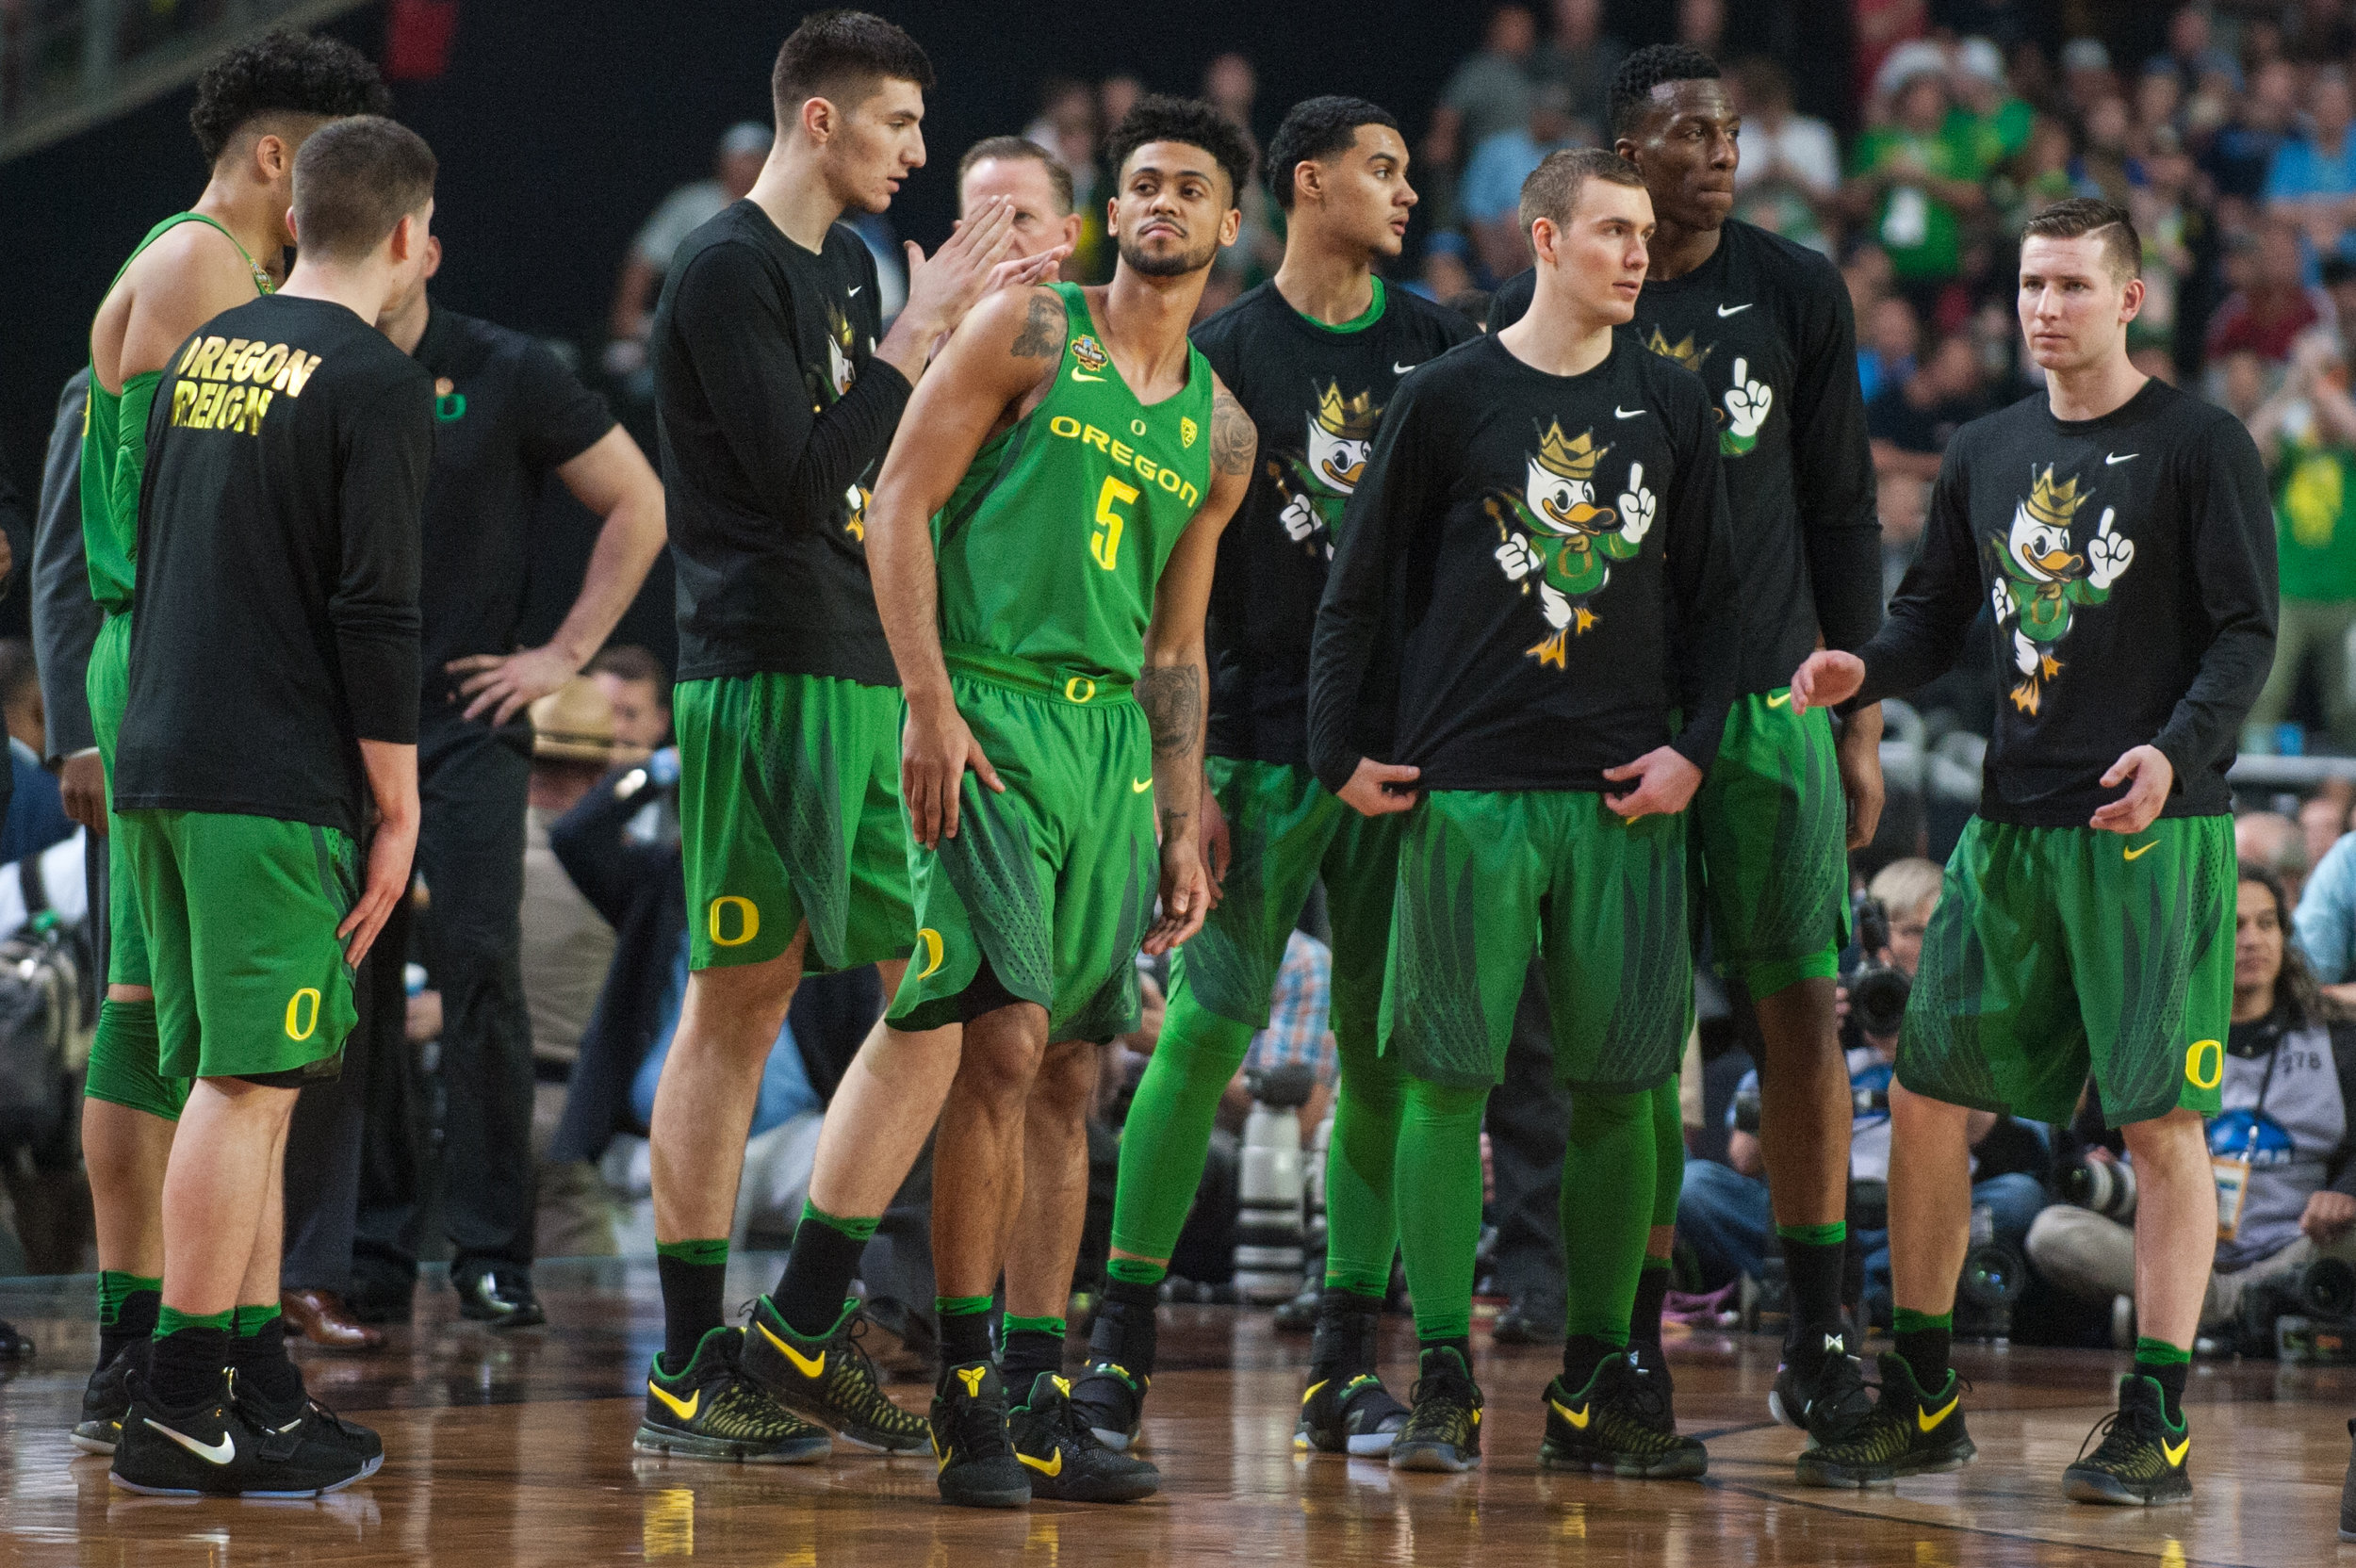 17.03.31.emg.an.final.four.oregon.vs.north.carolina-3.jpg